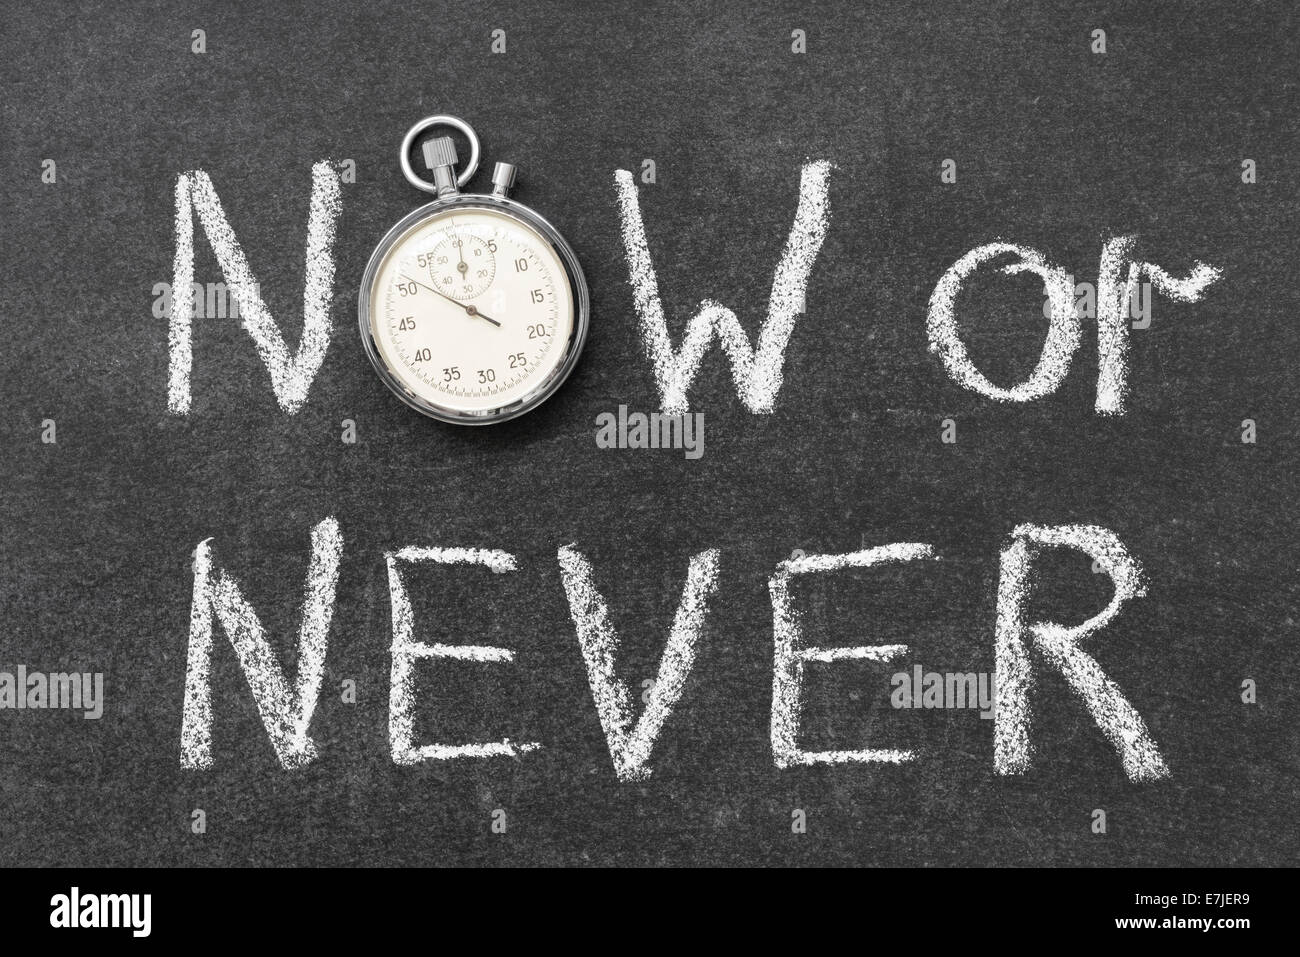 now or never concept handwritten on chalkboard with vintage precise stopwatch used instead of O - Stock Image